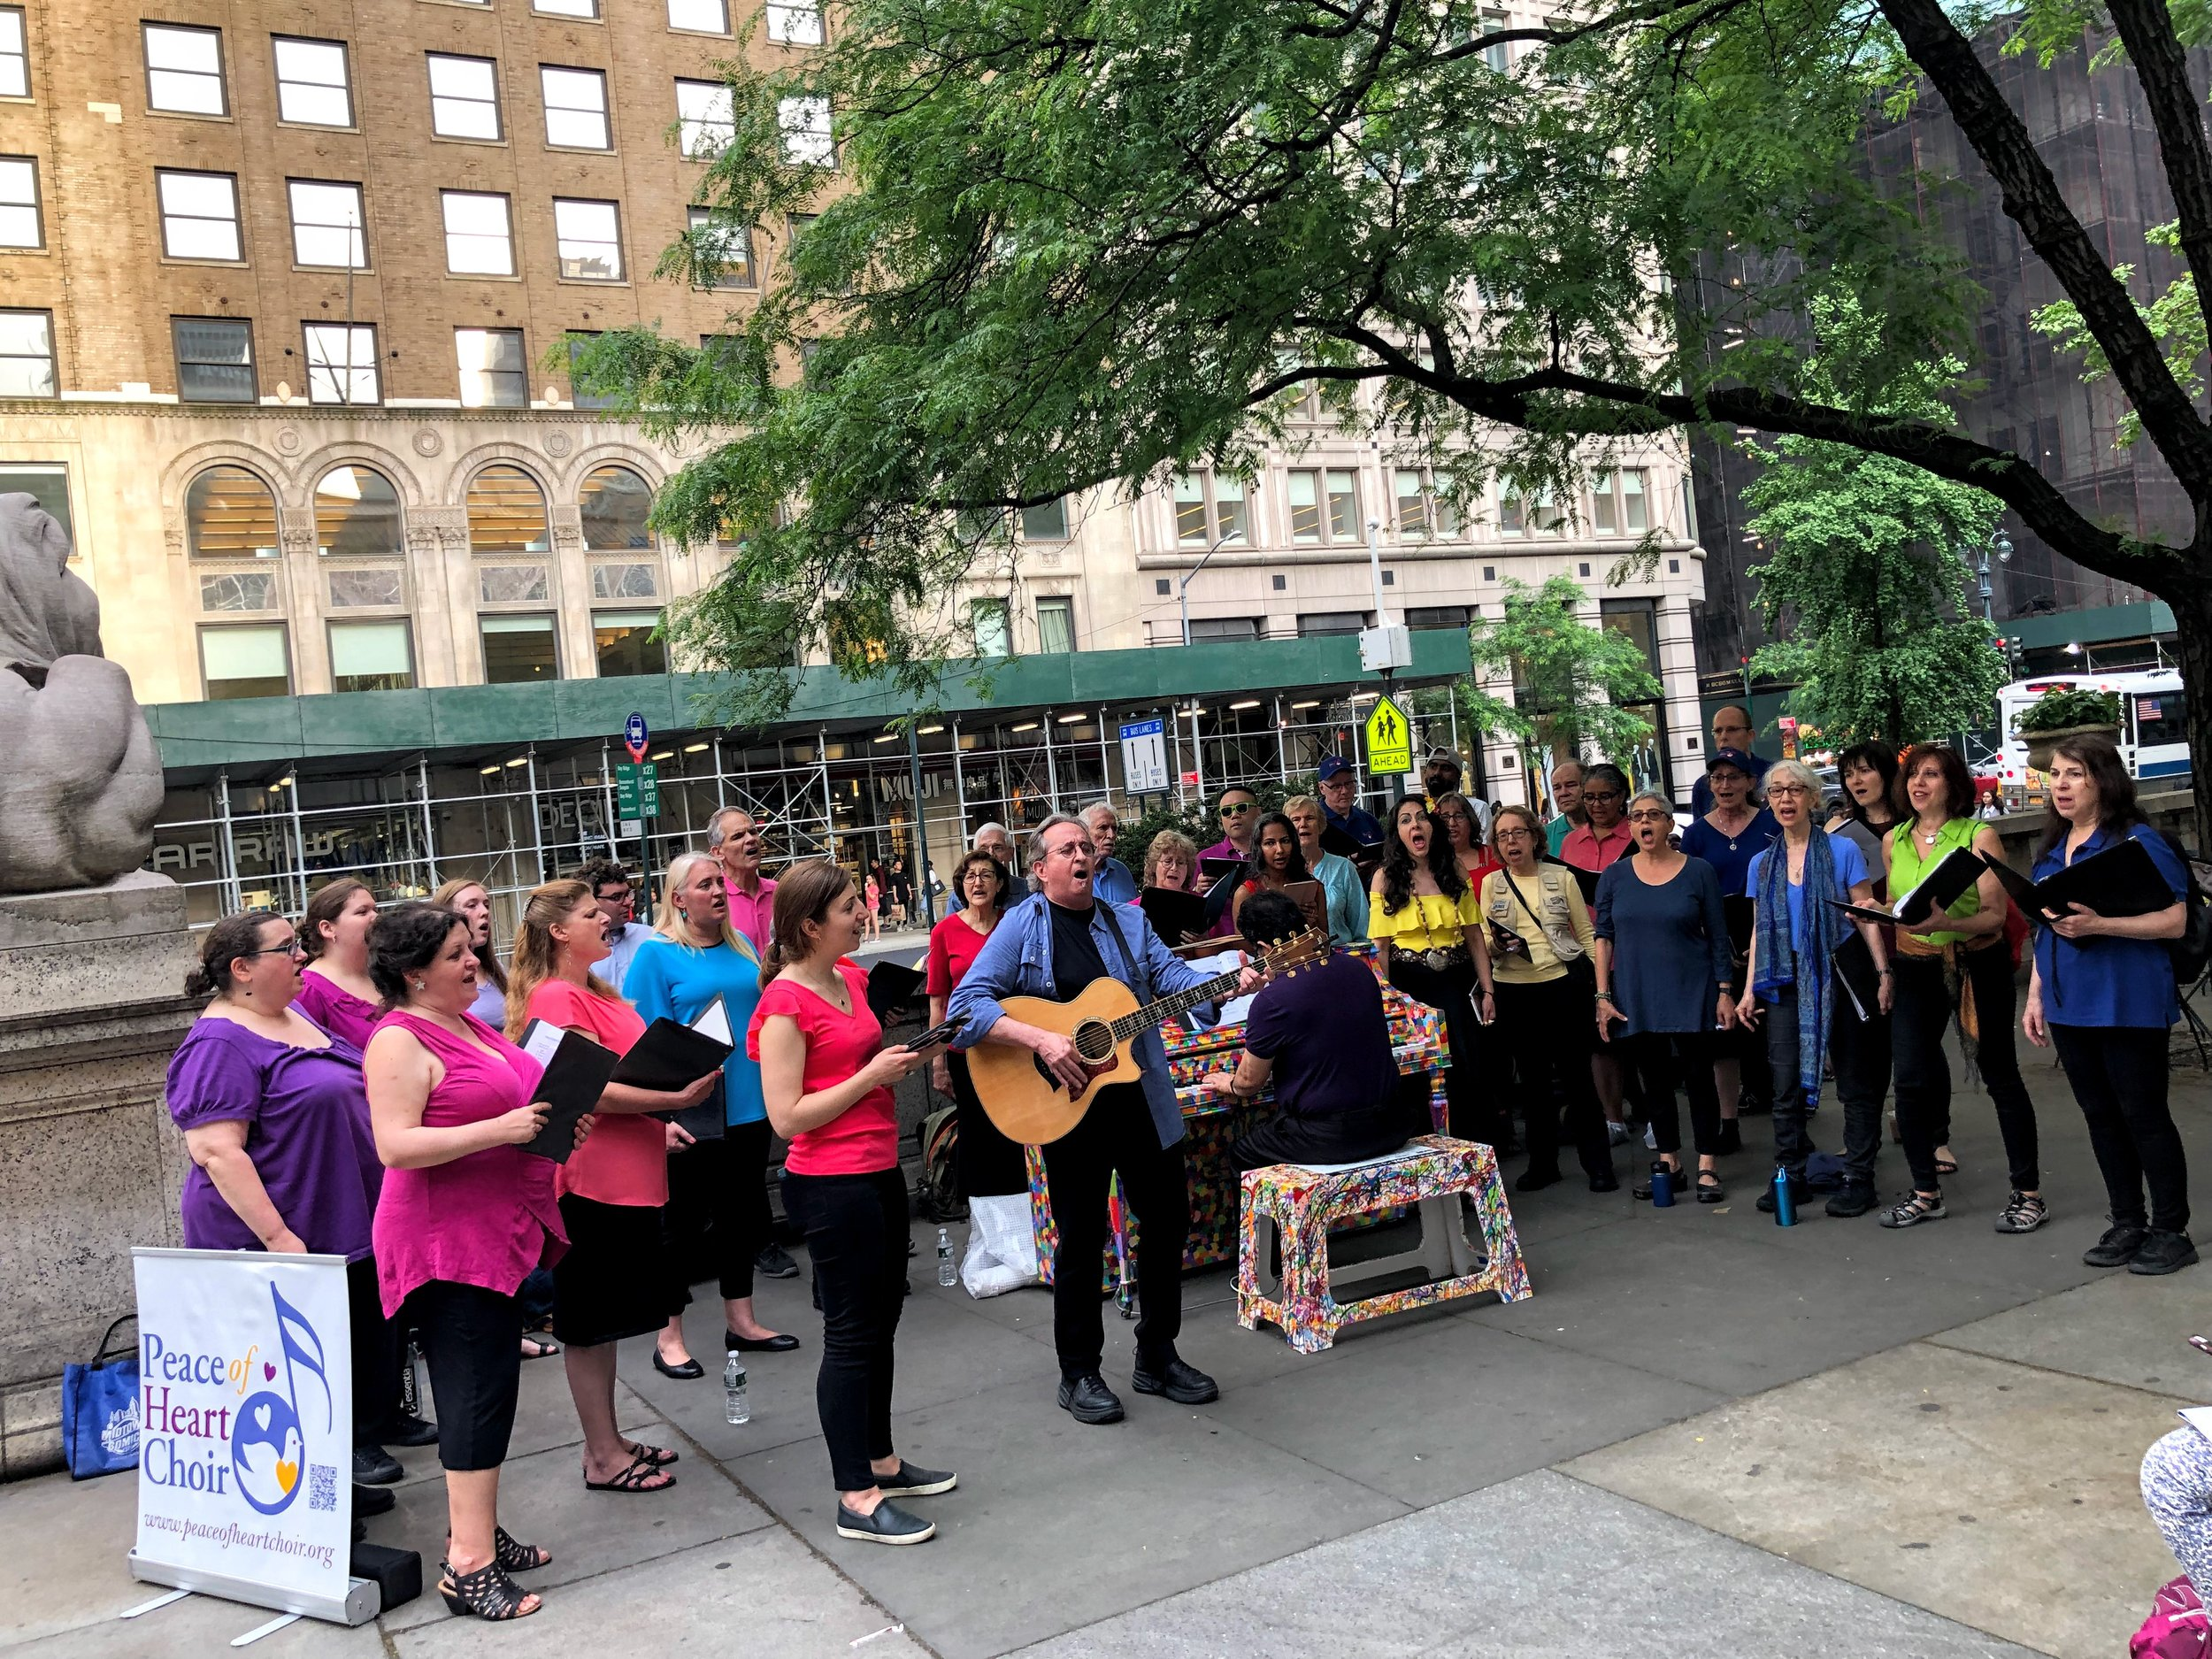 The choir sings near Patience, one of the famed lion statues, outside the NY Public Library on 5th Avenue.